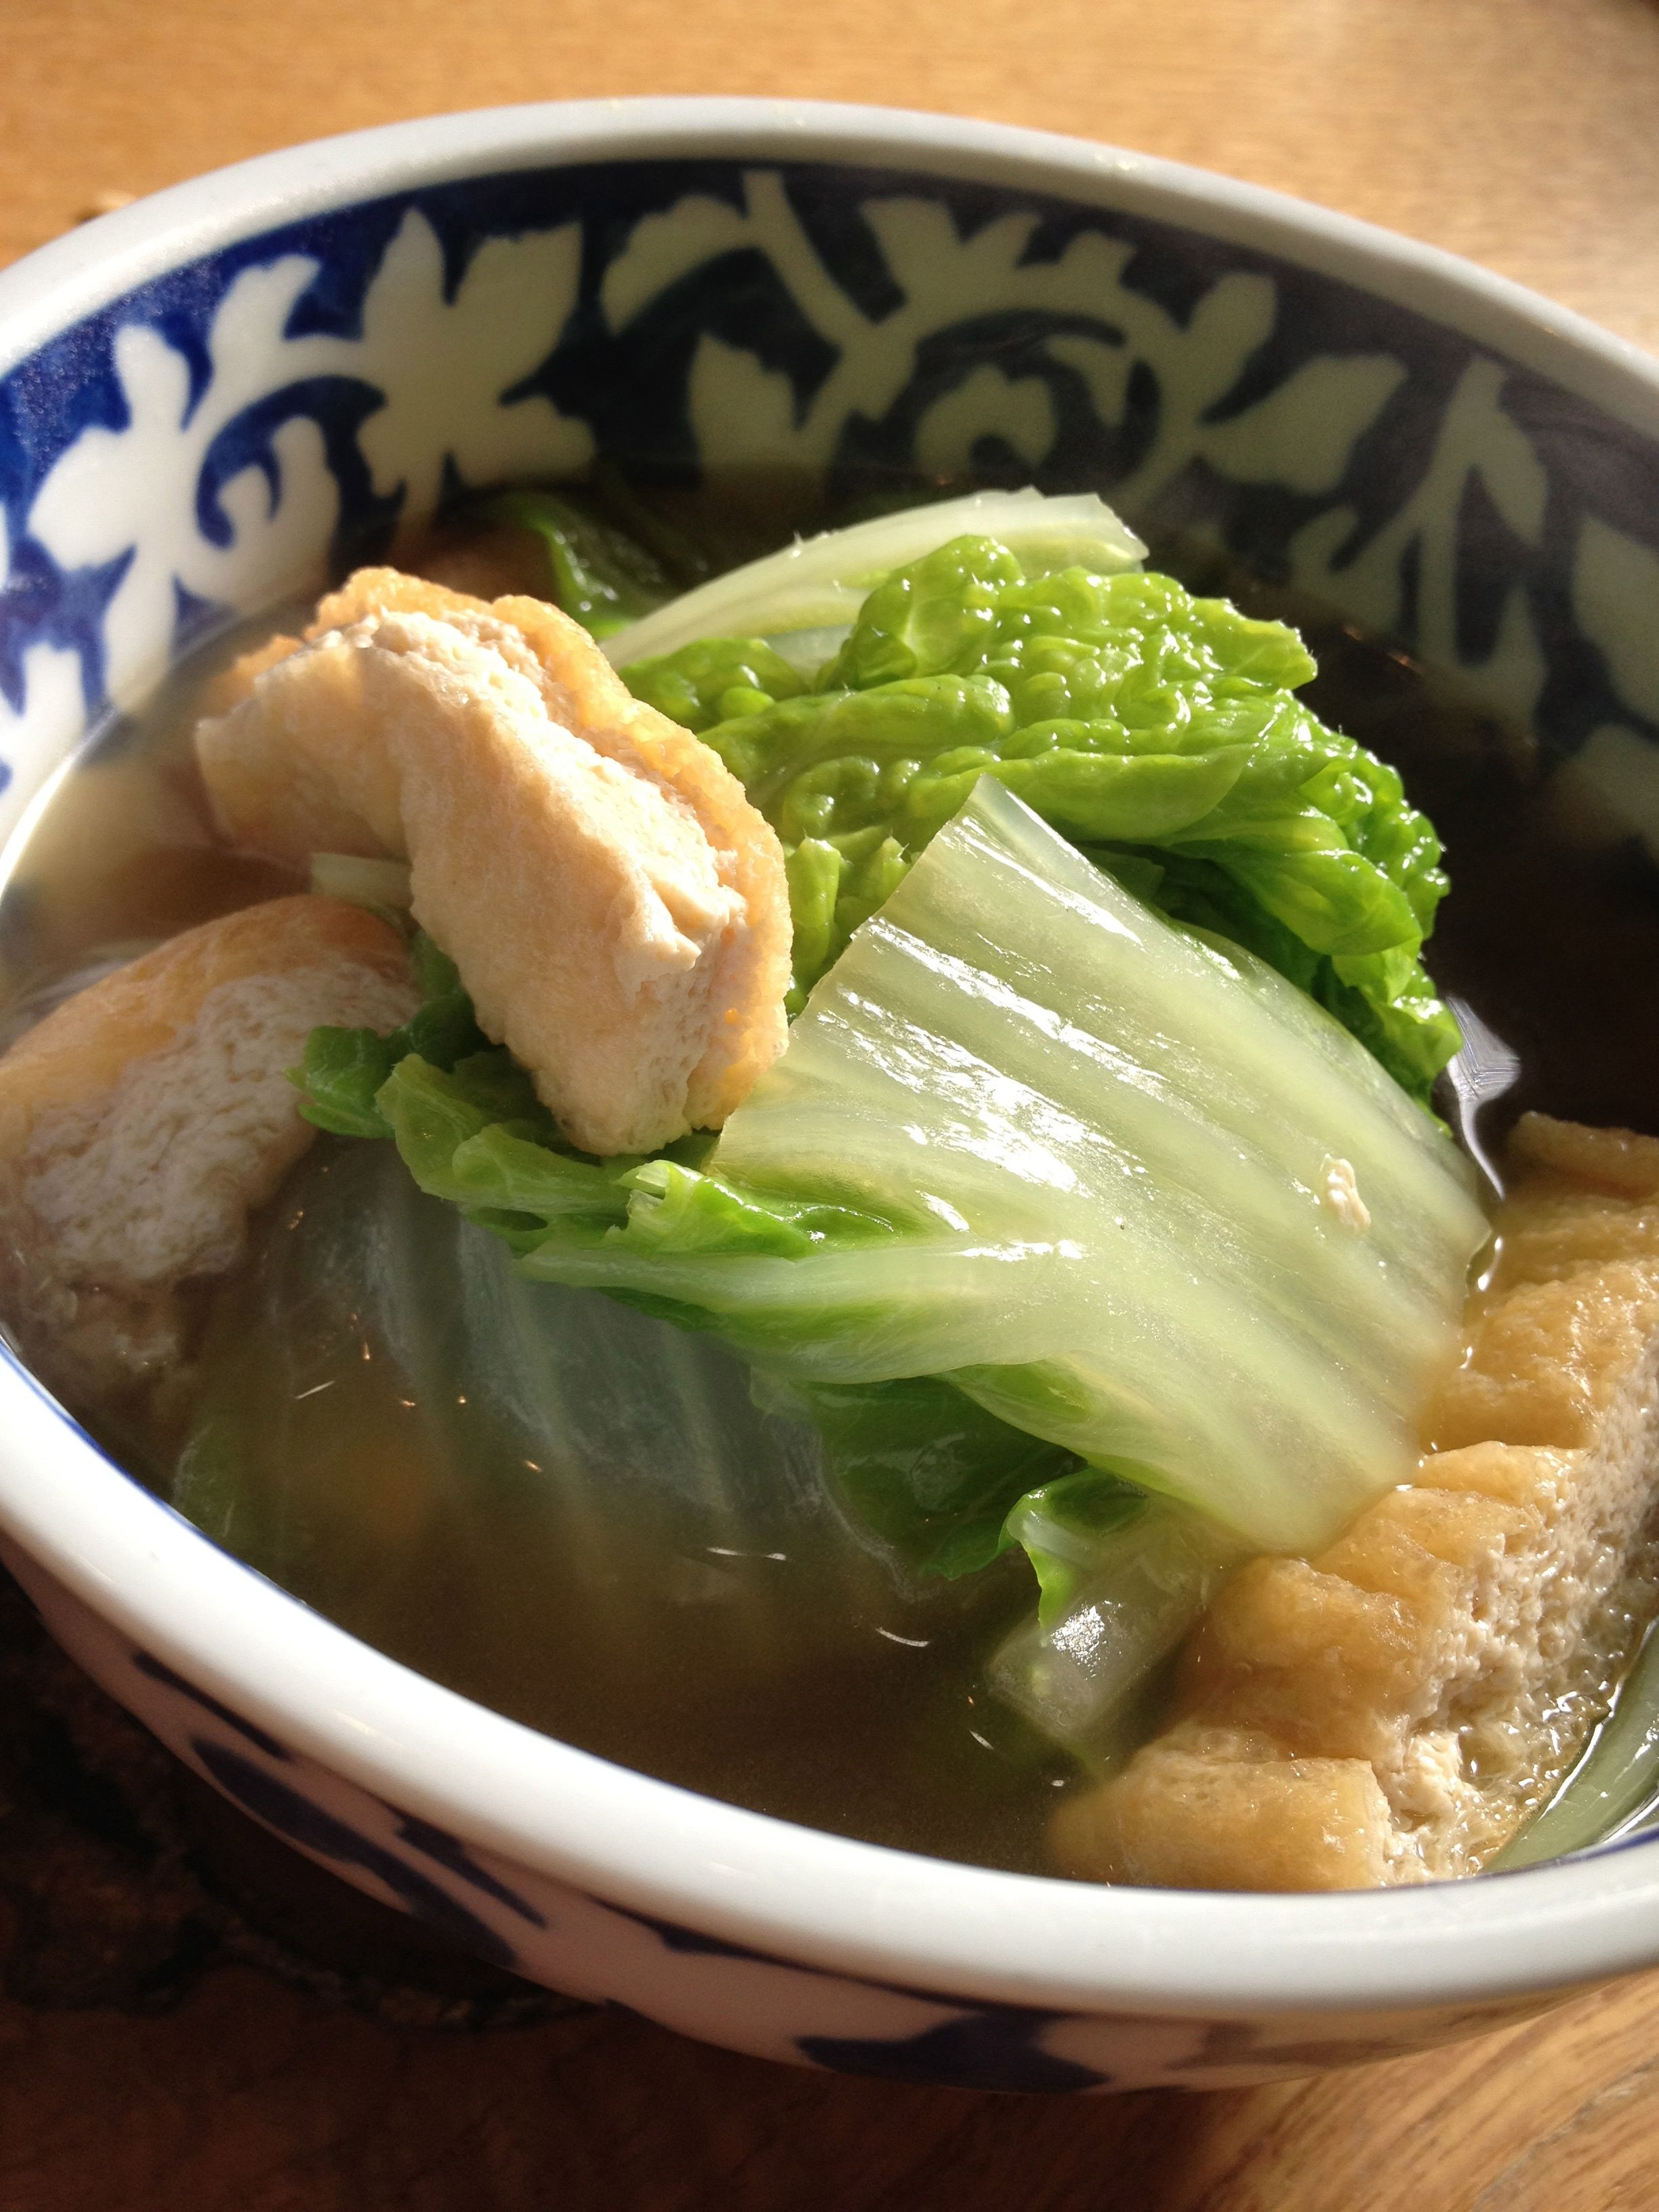 Obanzai Kyoto (Boiled Hakusai Cabbage & Fried Tofu)